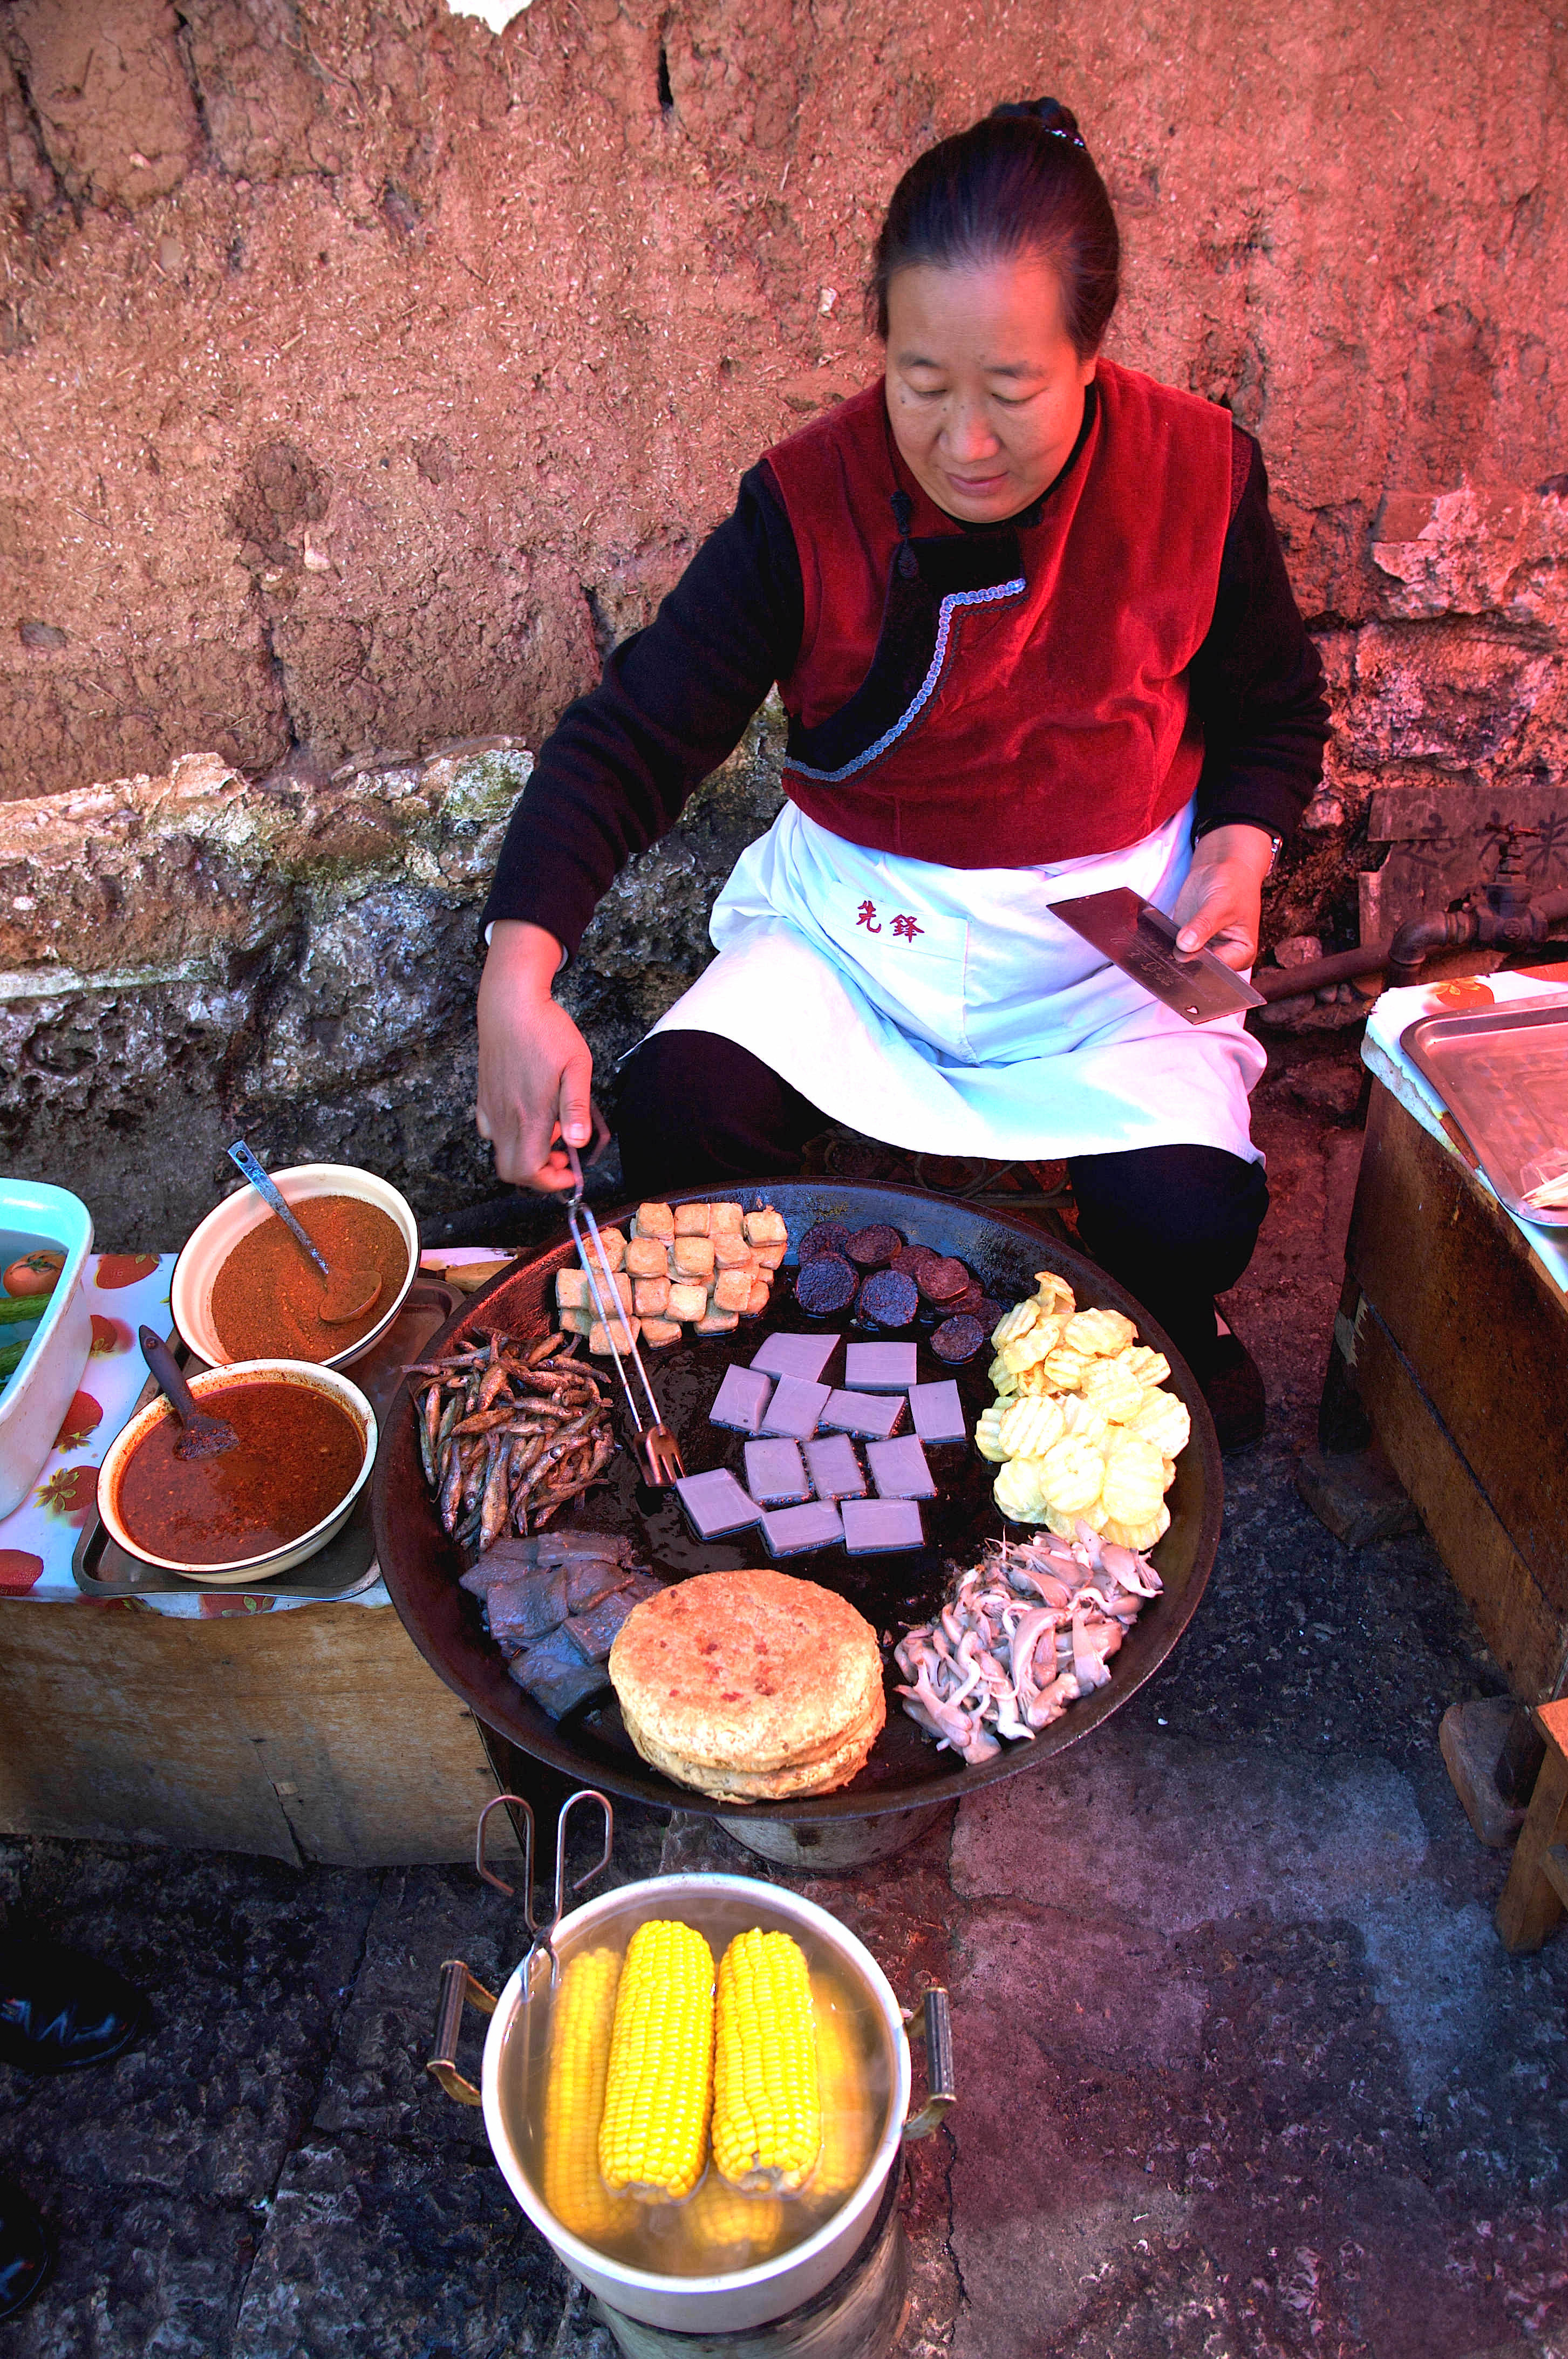 Sidewalk chef in historic Old Town Lijiang